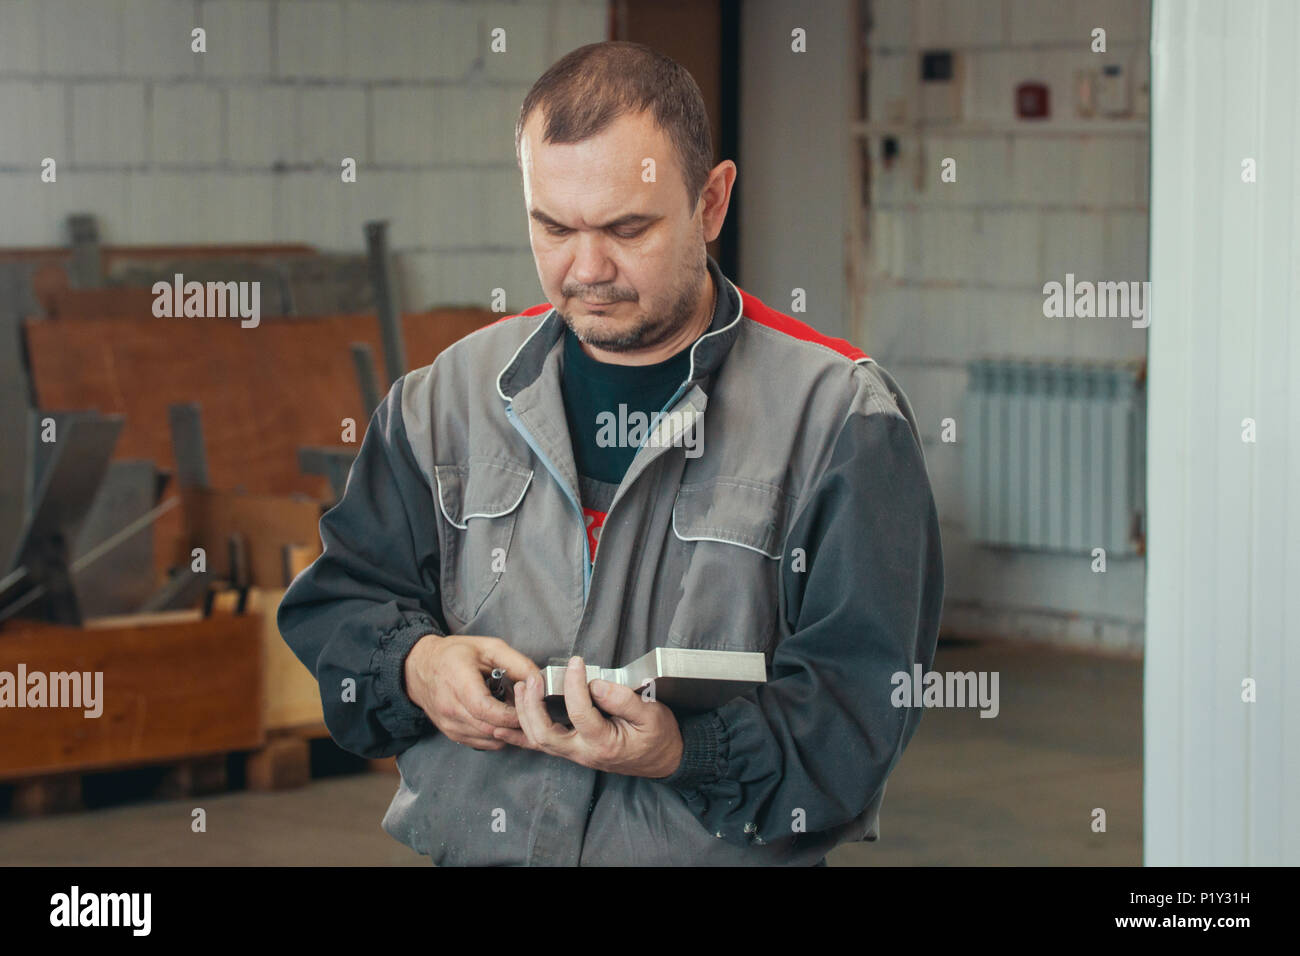 Adult man in uniform working with metal detail at CNC machine at factory with lathes Stock Photo